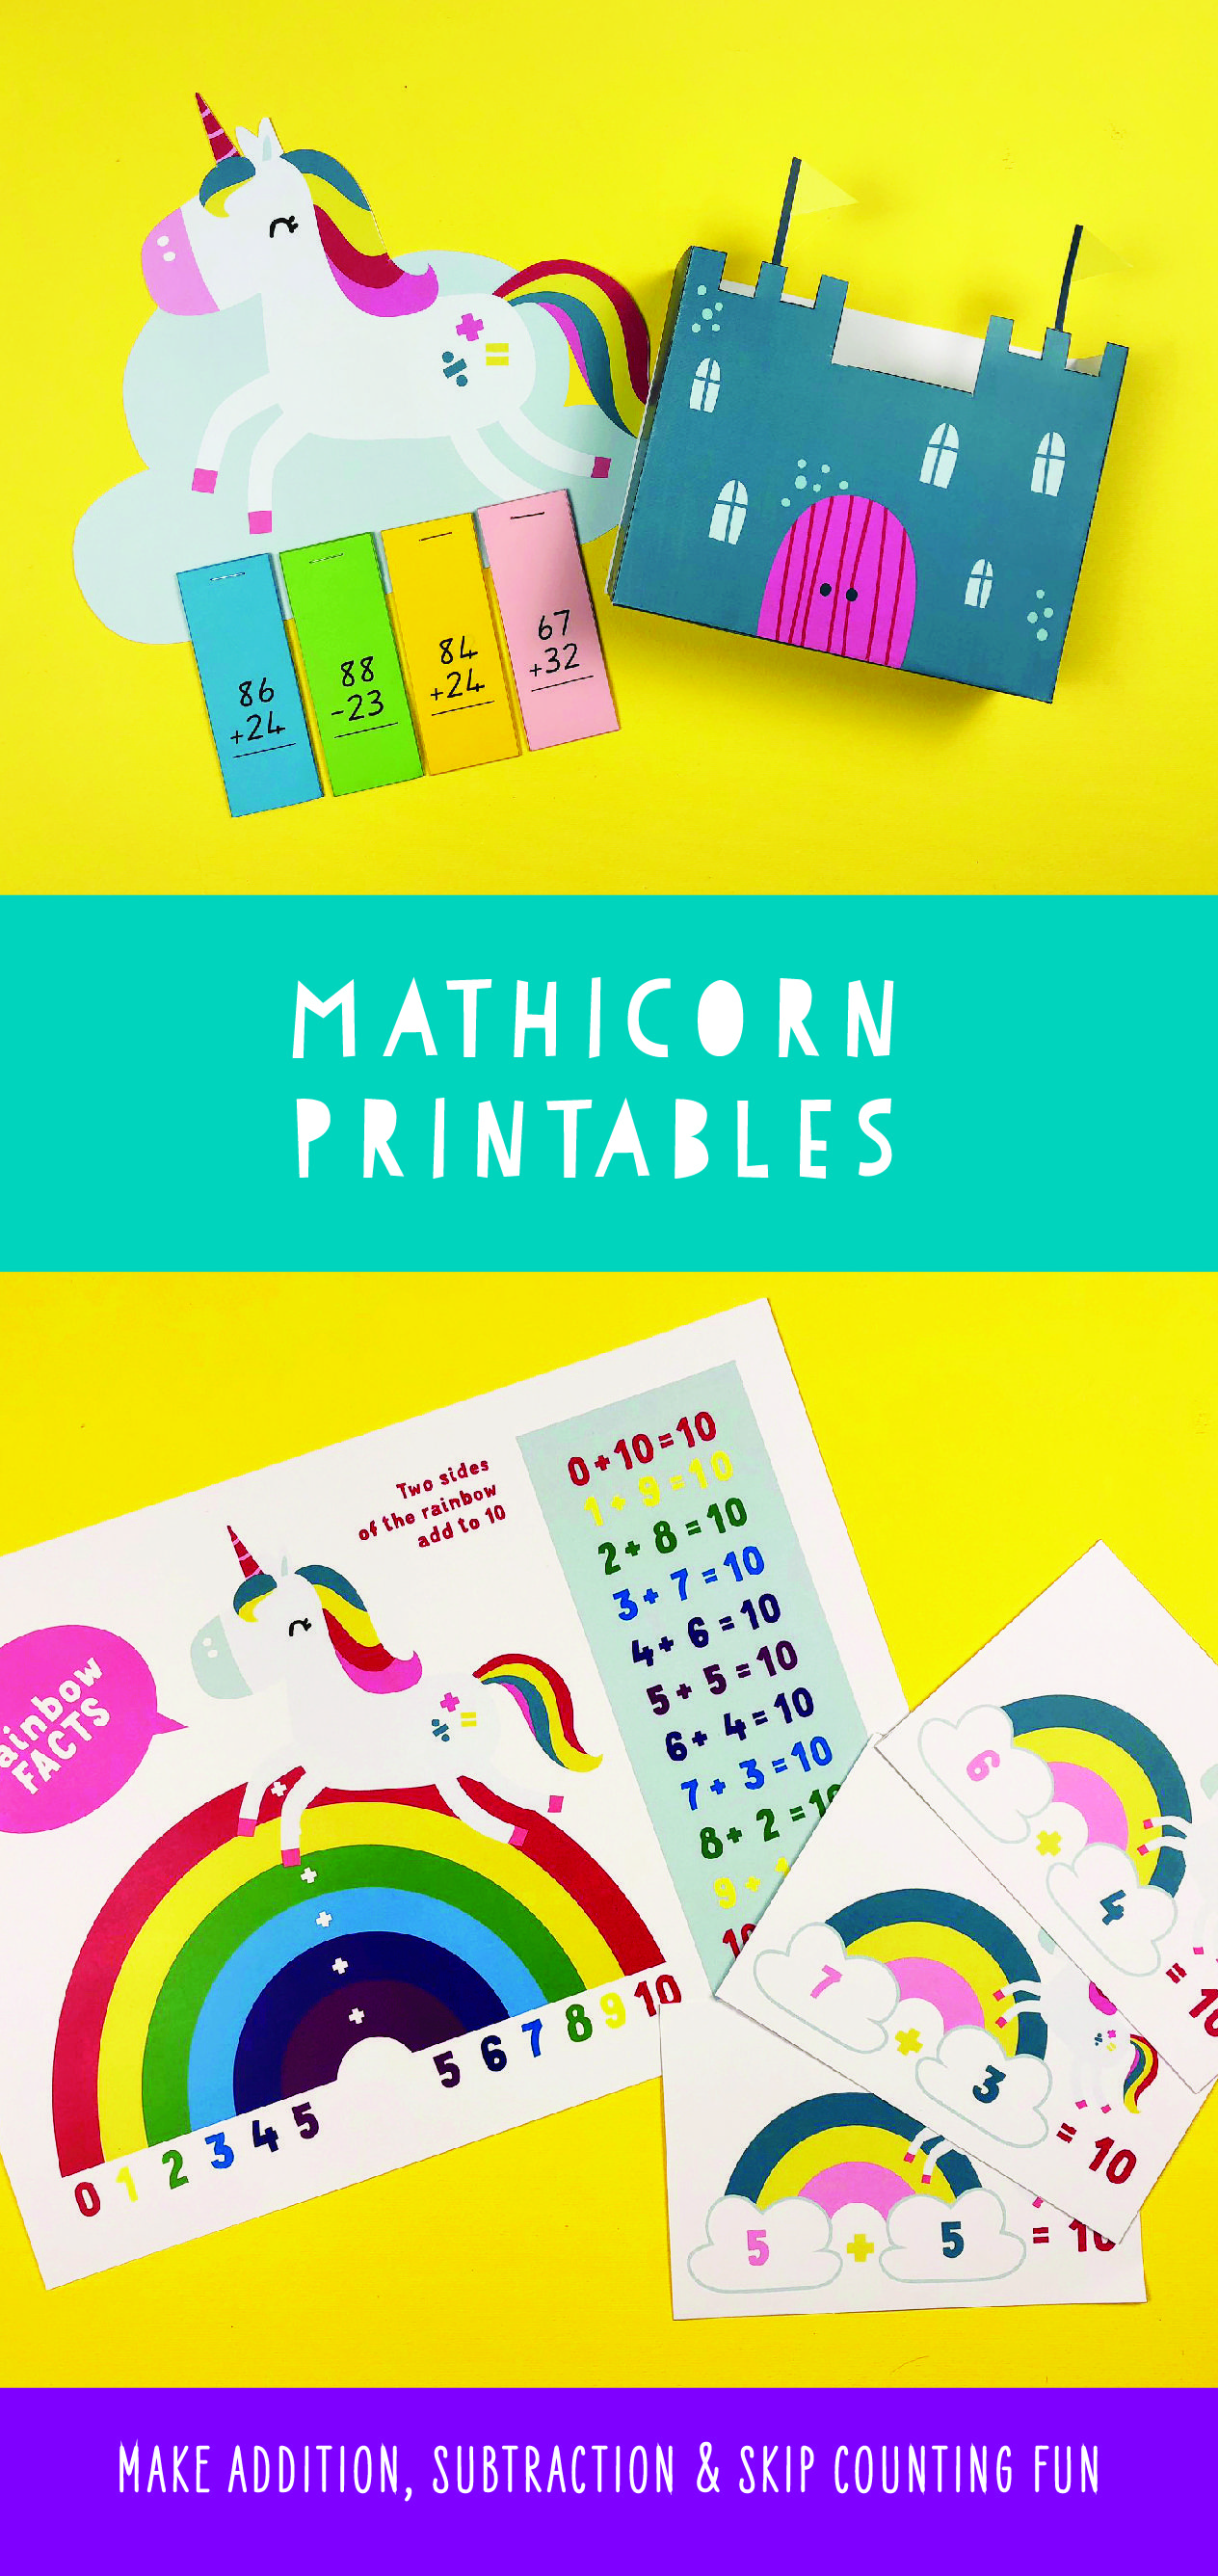 Help Your Kid With Maths With These Cute Printables